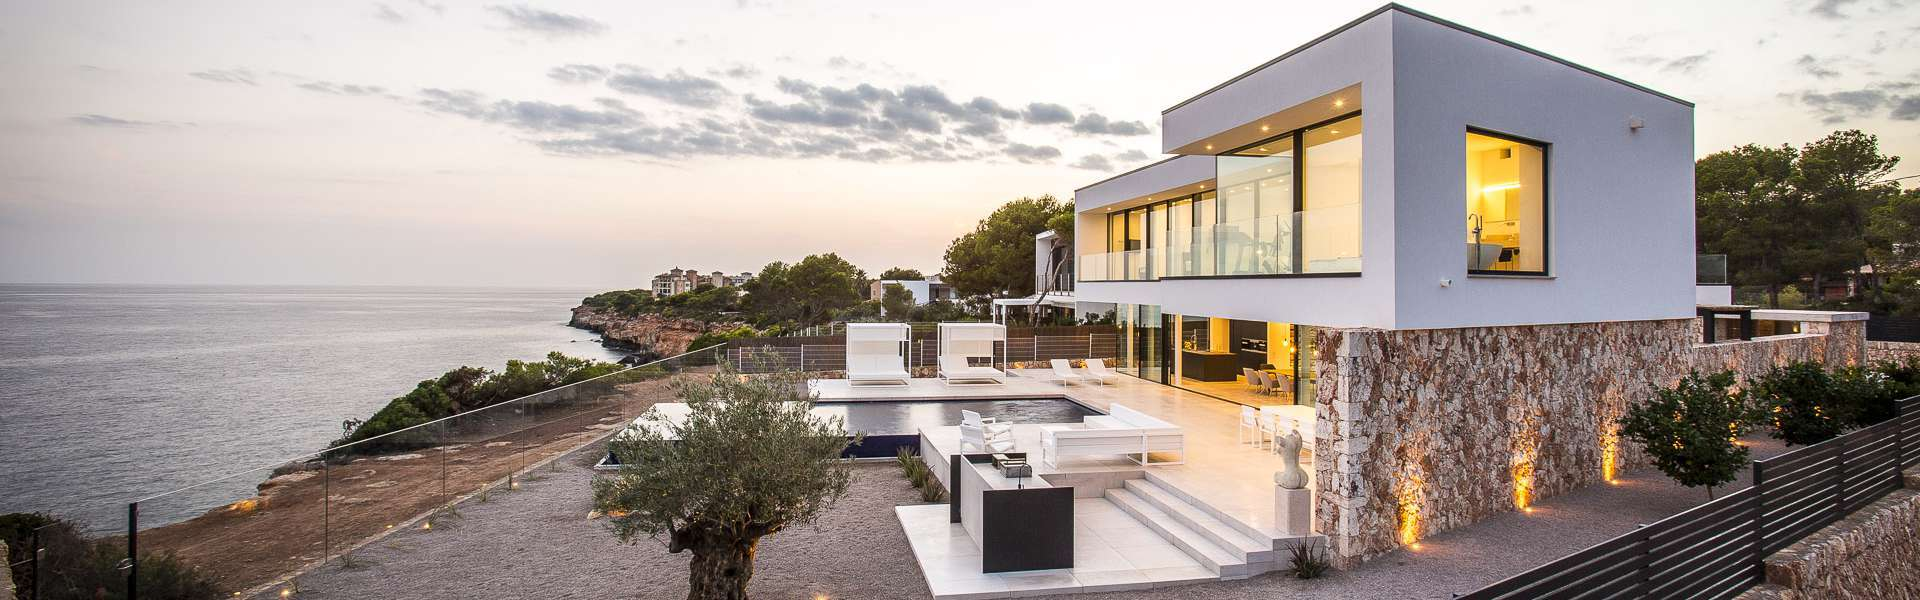 Cala Pi -  Exclusive villa at the seaside